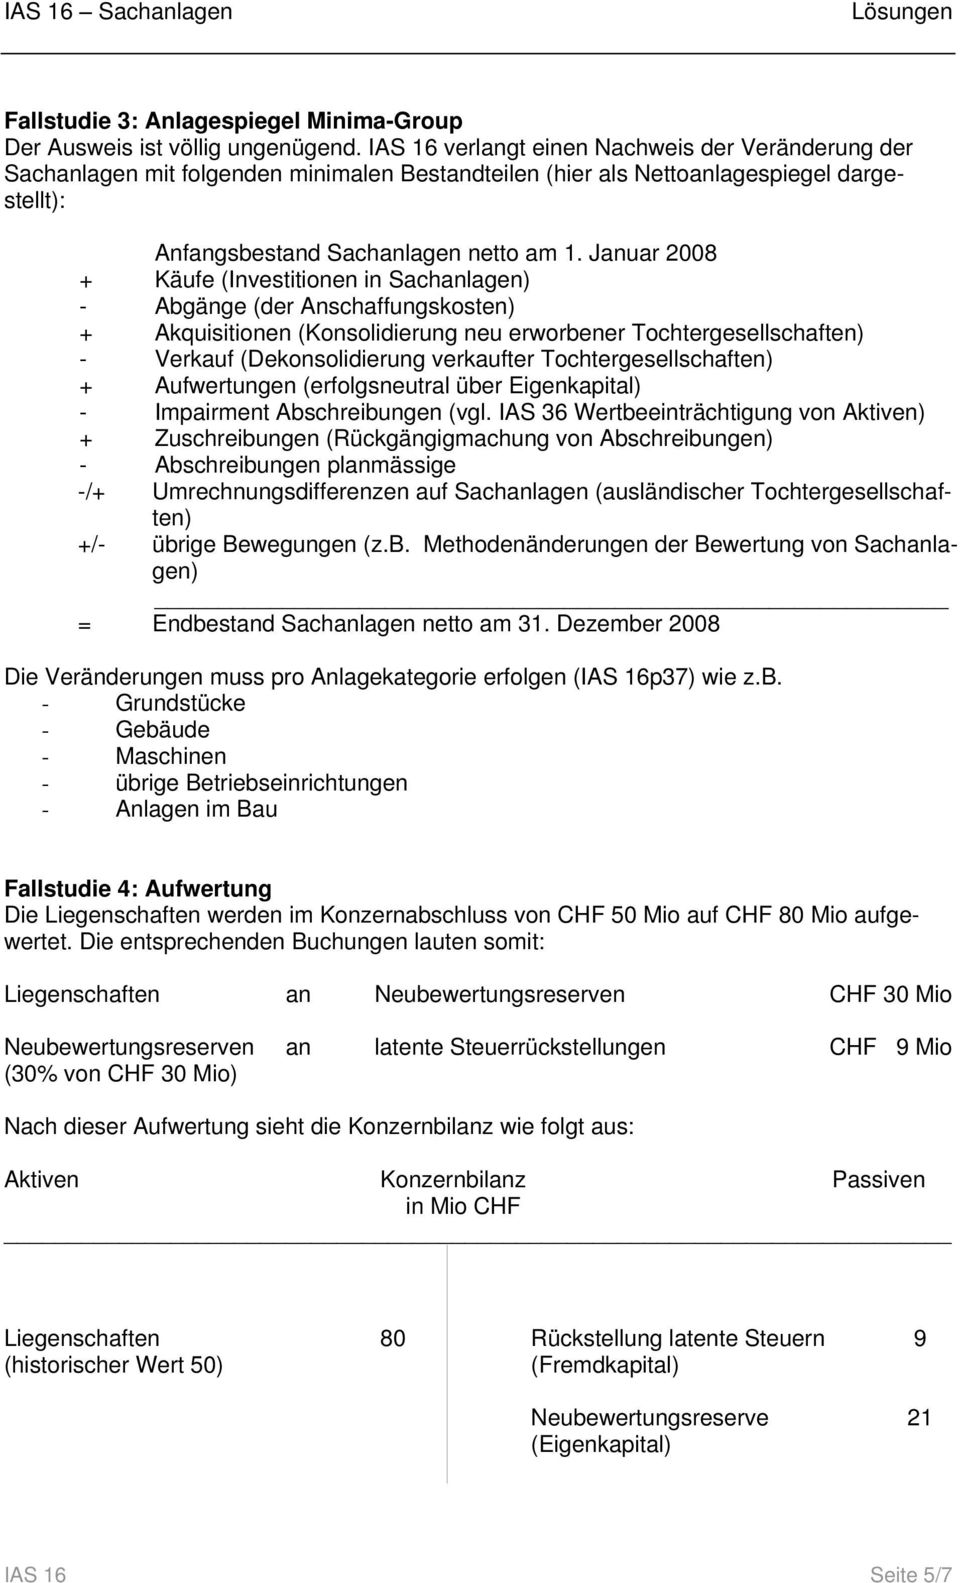 Januar 2008 + Käufe (Investitionen in Sachanlagen) (der Anschaffungskosten) + Akquisitionen (Konsolidierung neu erworbener Tochtergesellschaften) - Verkauf (Dekonsolidierung verkaufter